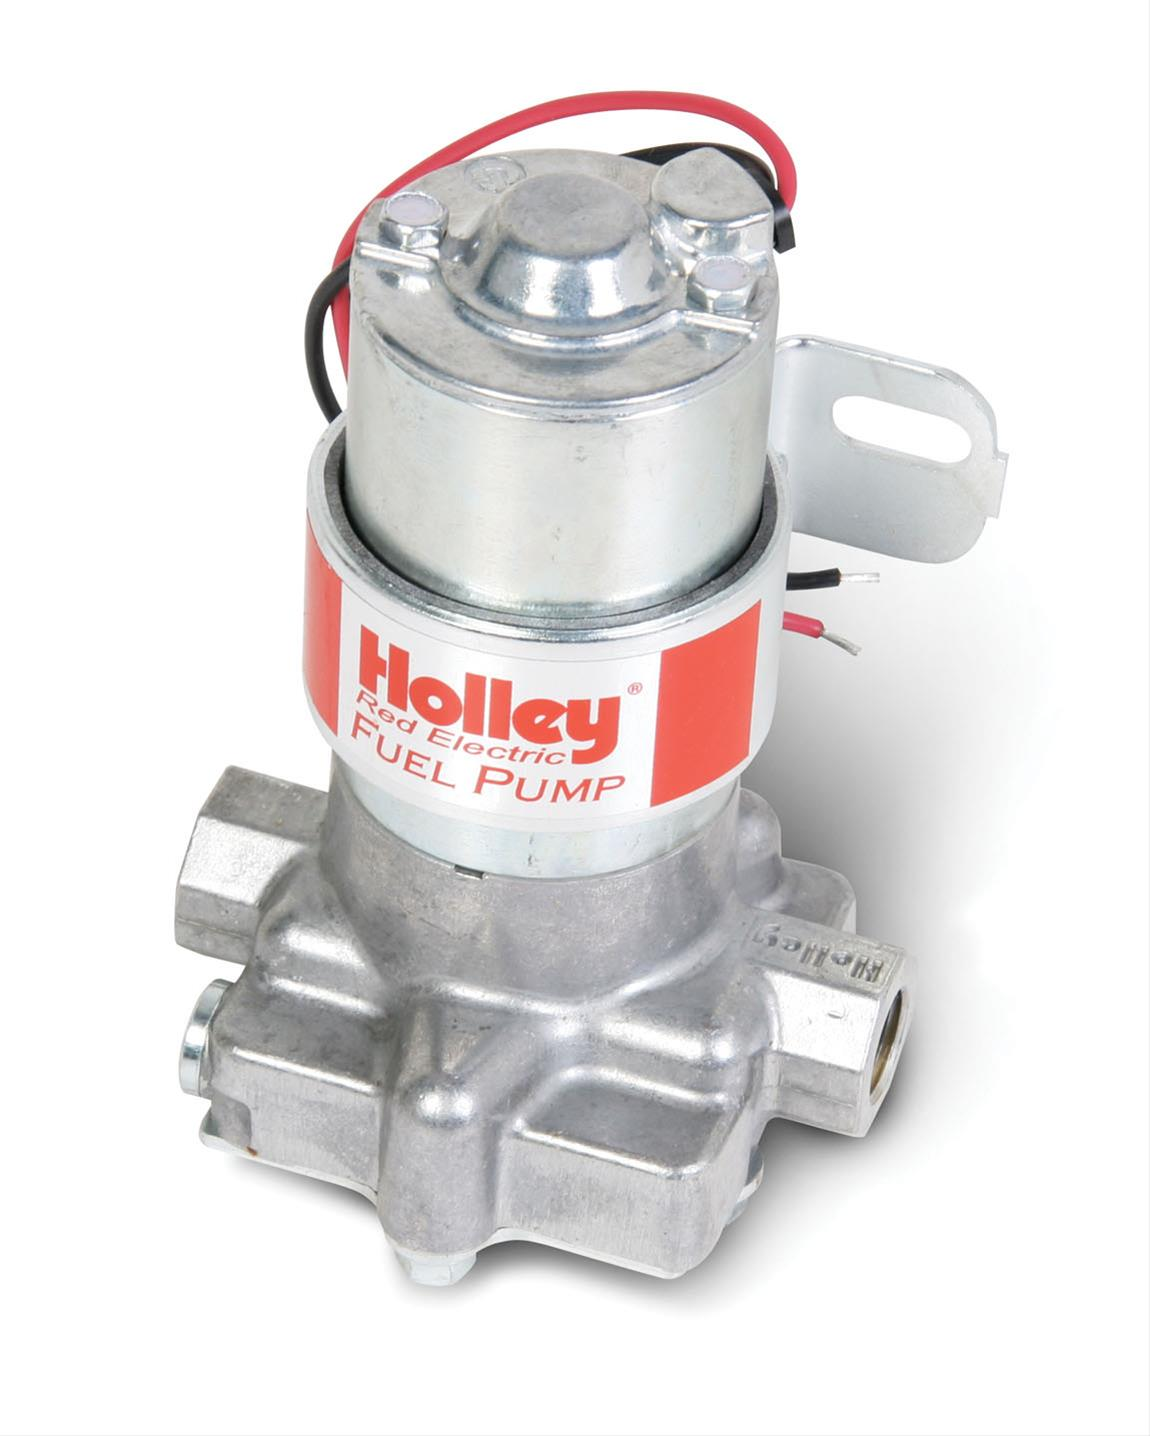 holley 12 801 1 red rotor vane electric fuel pump 97 gph 7 psi 3 8